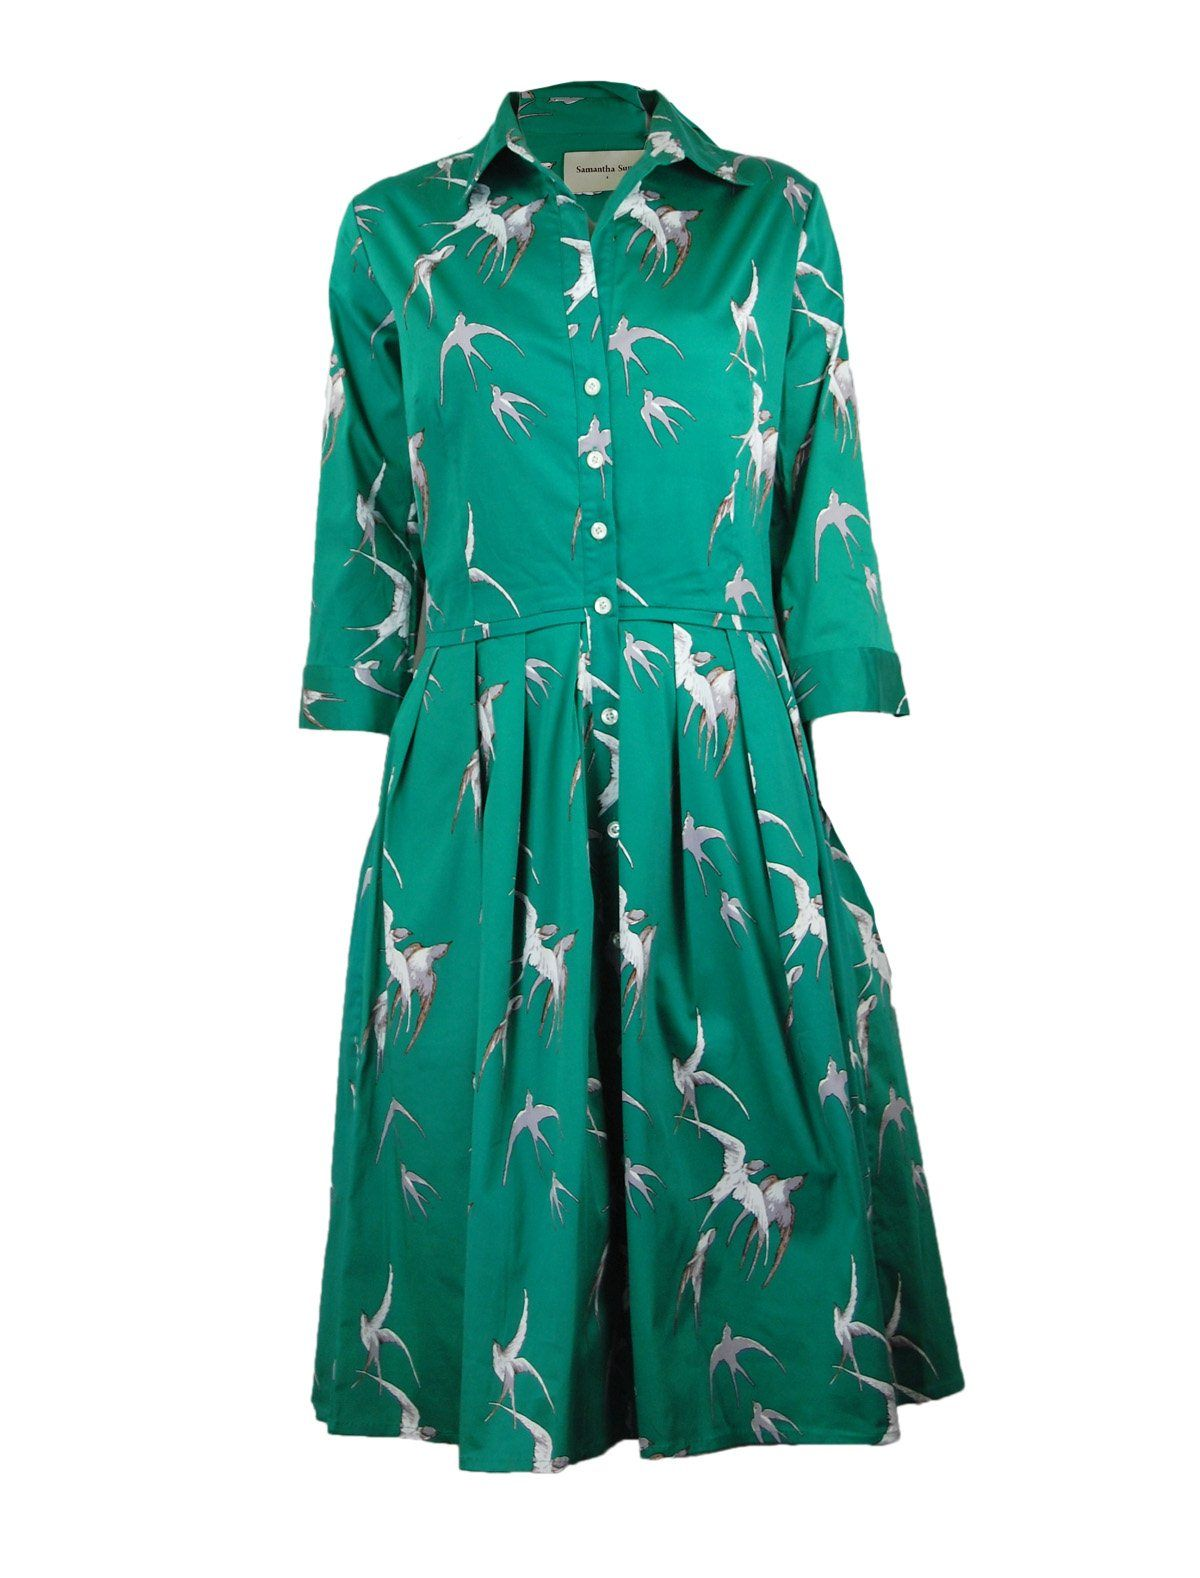 f3cb0a4a502e Samantha Sung Audrey Dress- Martins- Green - KJs Laundry | Fashion ...